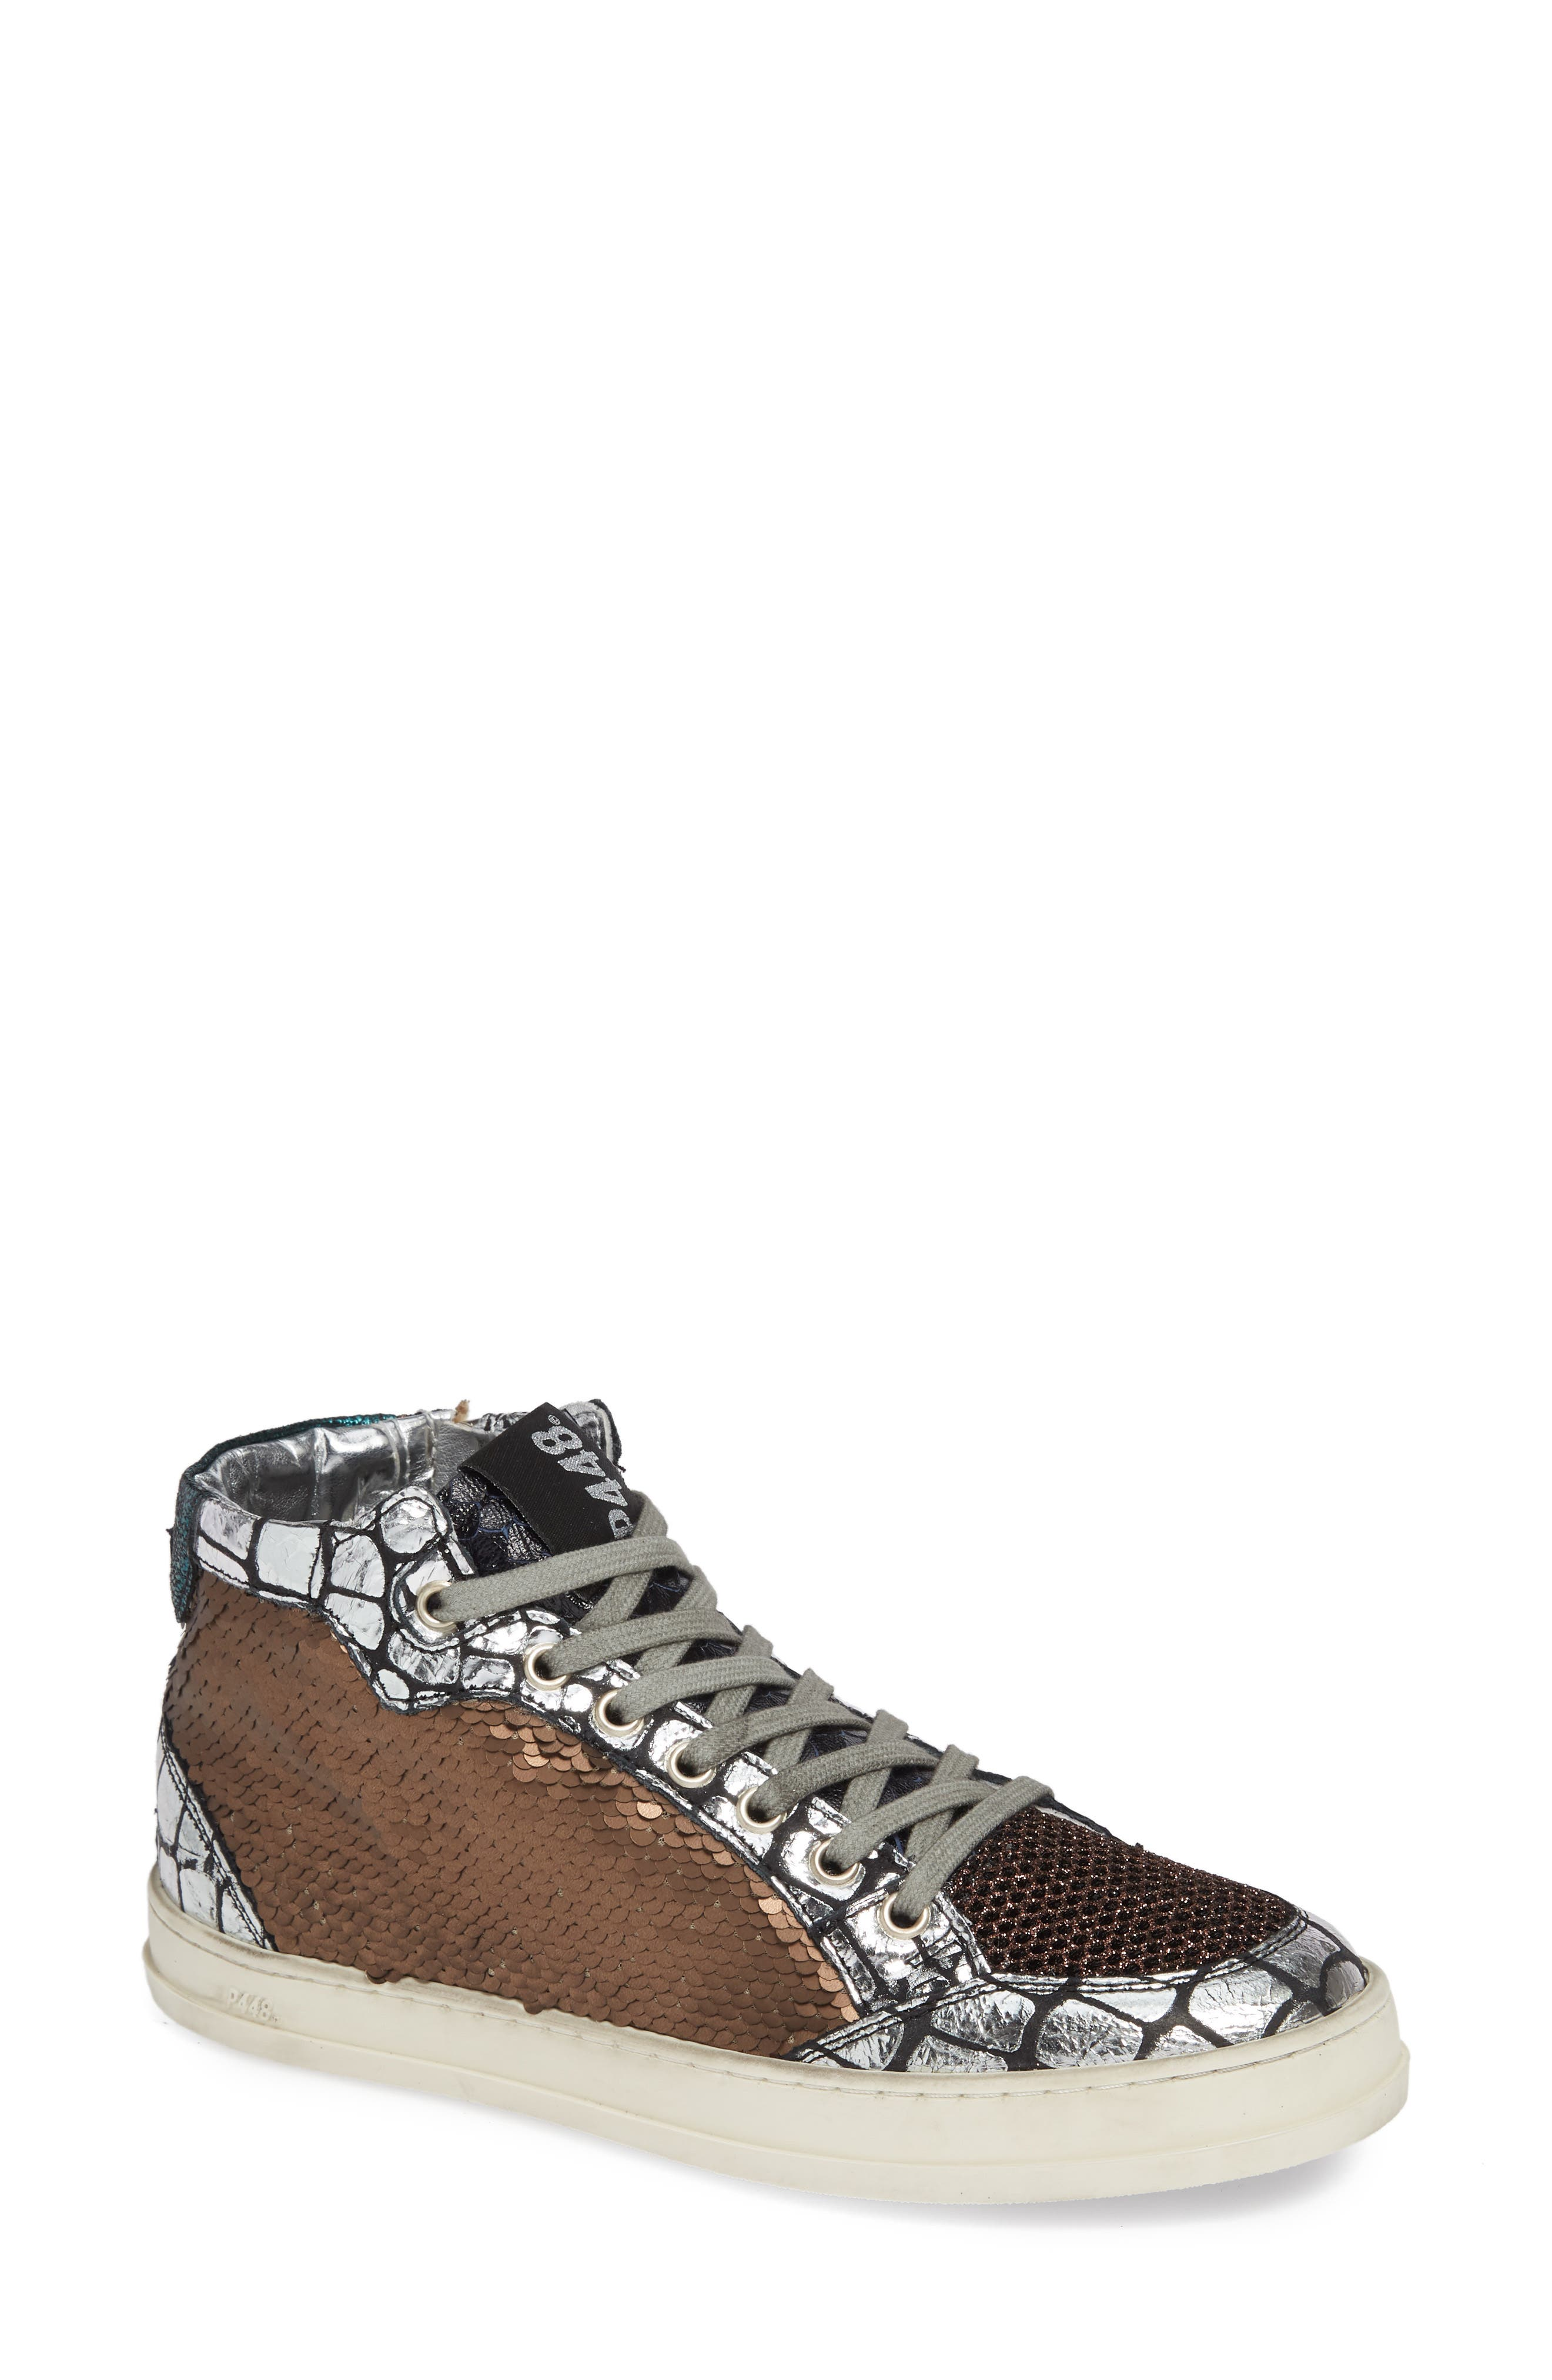 P448 Women'S Lovebs Pailettes Lace-Up High Top Sneakers in Bronze Paillettes